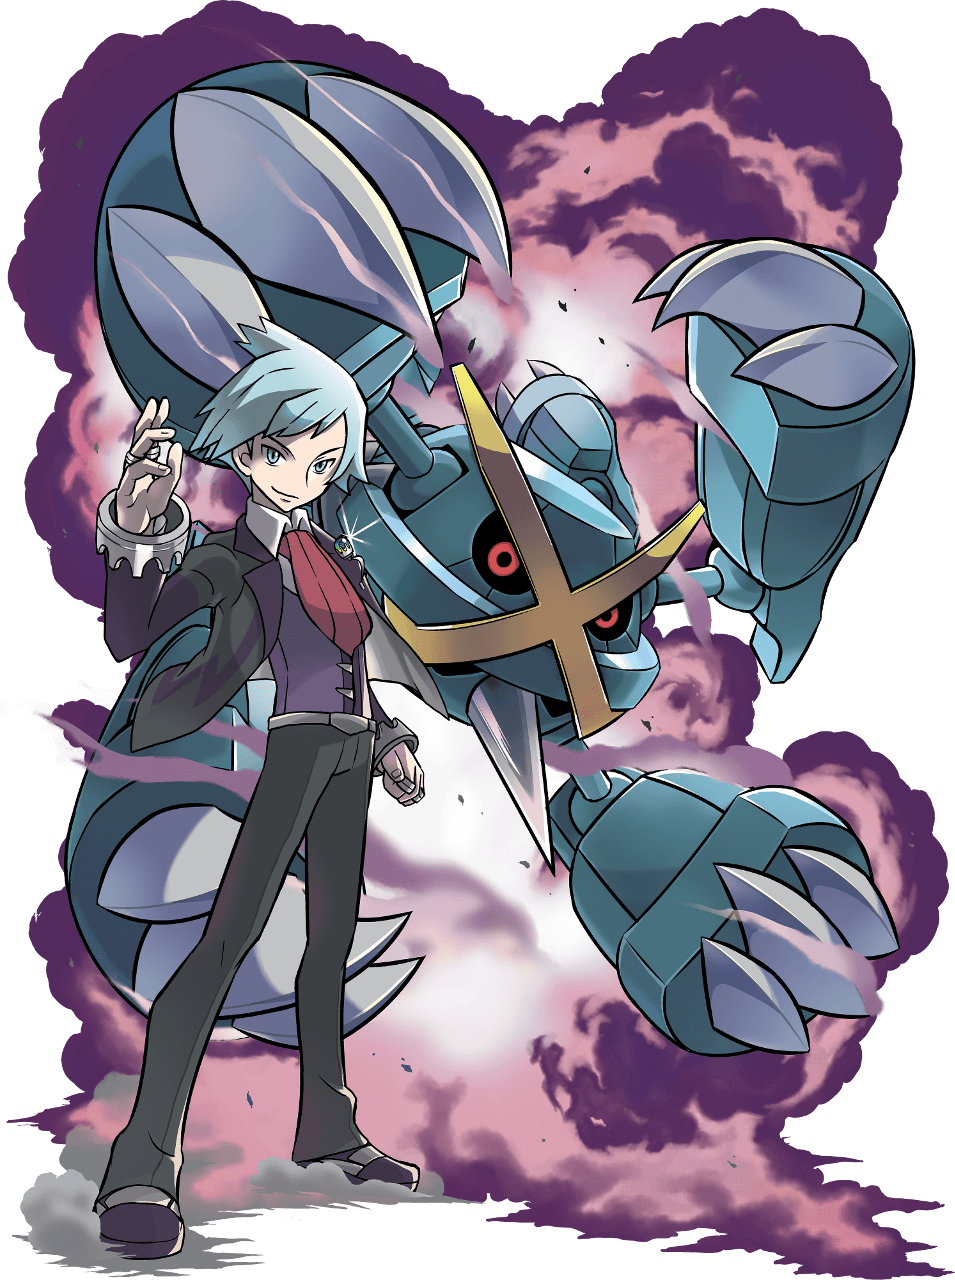 Steven's Metagross - Bulbapedia, the community-driven Pokémon ...